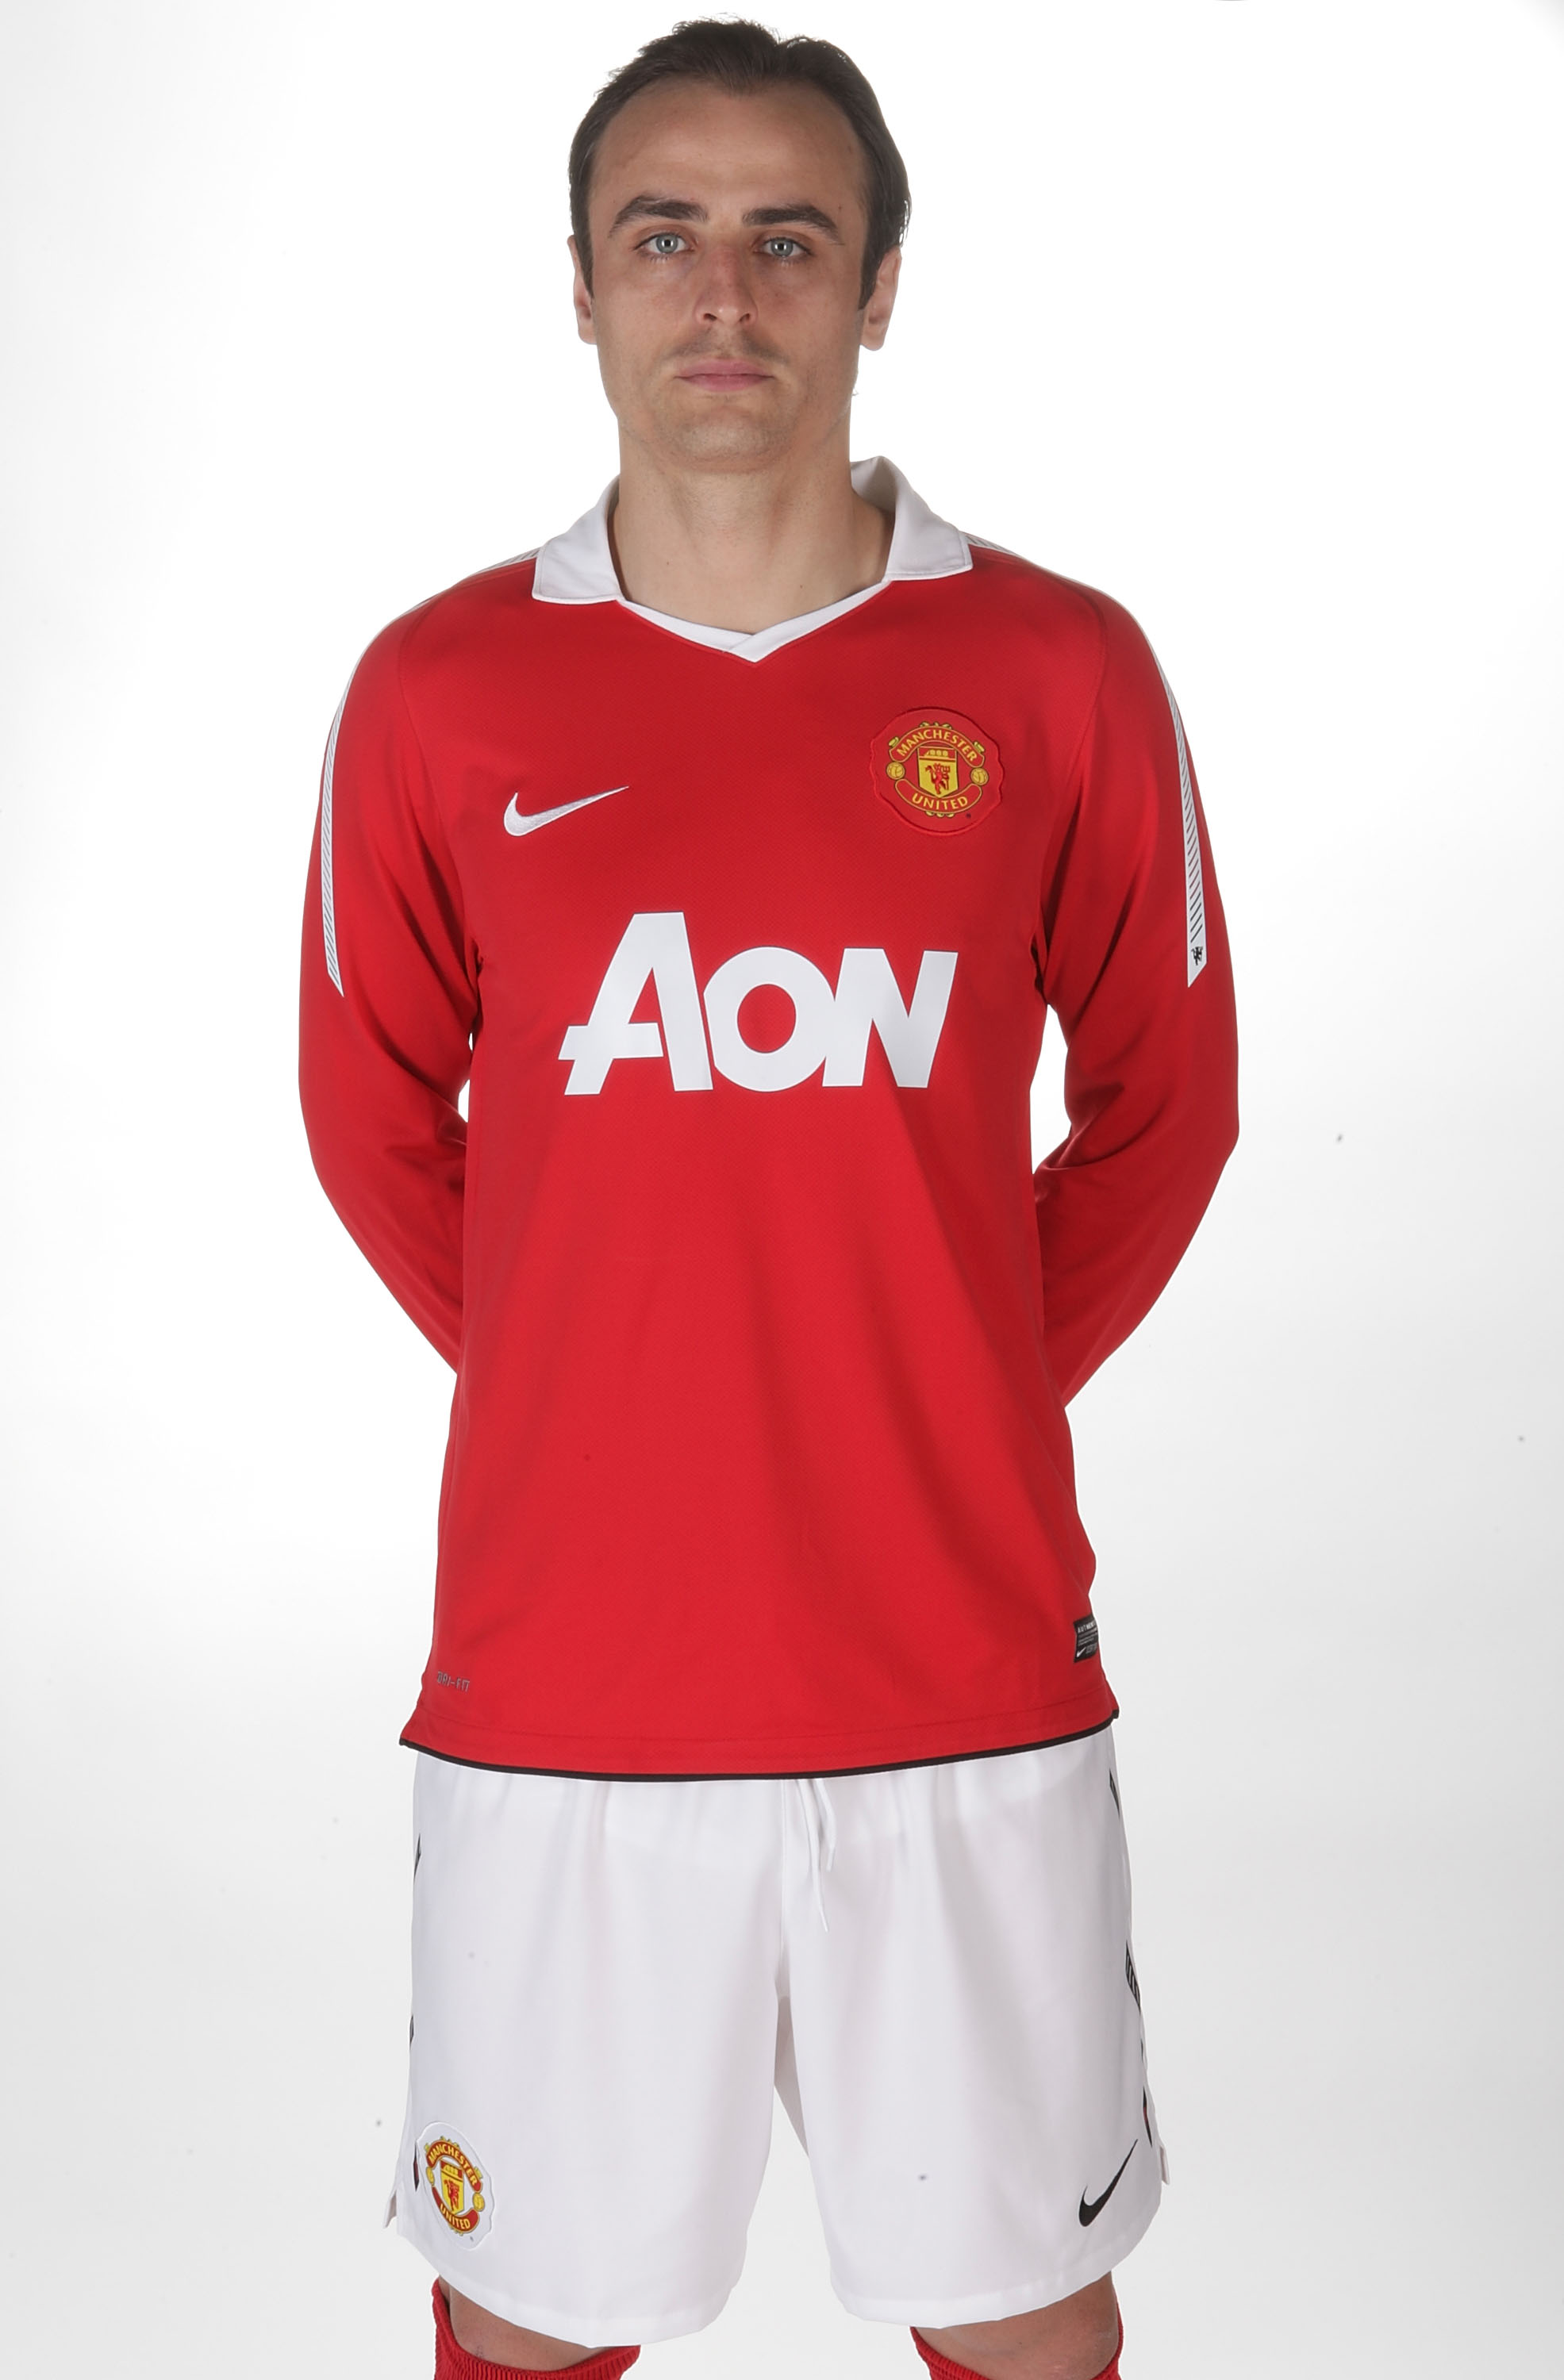 newest d1735 fd687 Manchester United Kit 2010/2011 | Manchester United Wallpaper